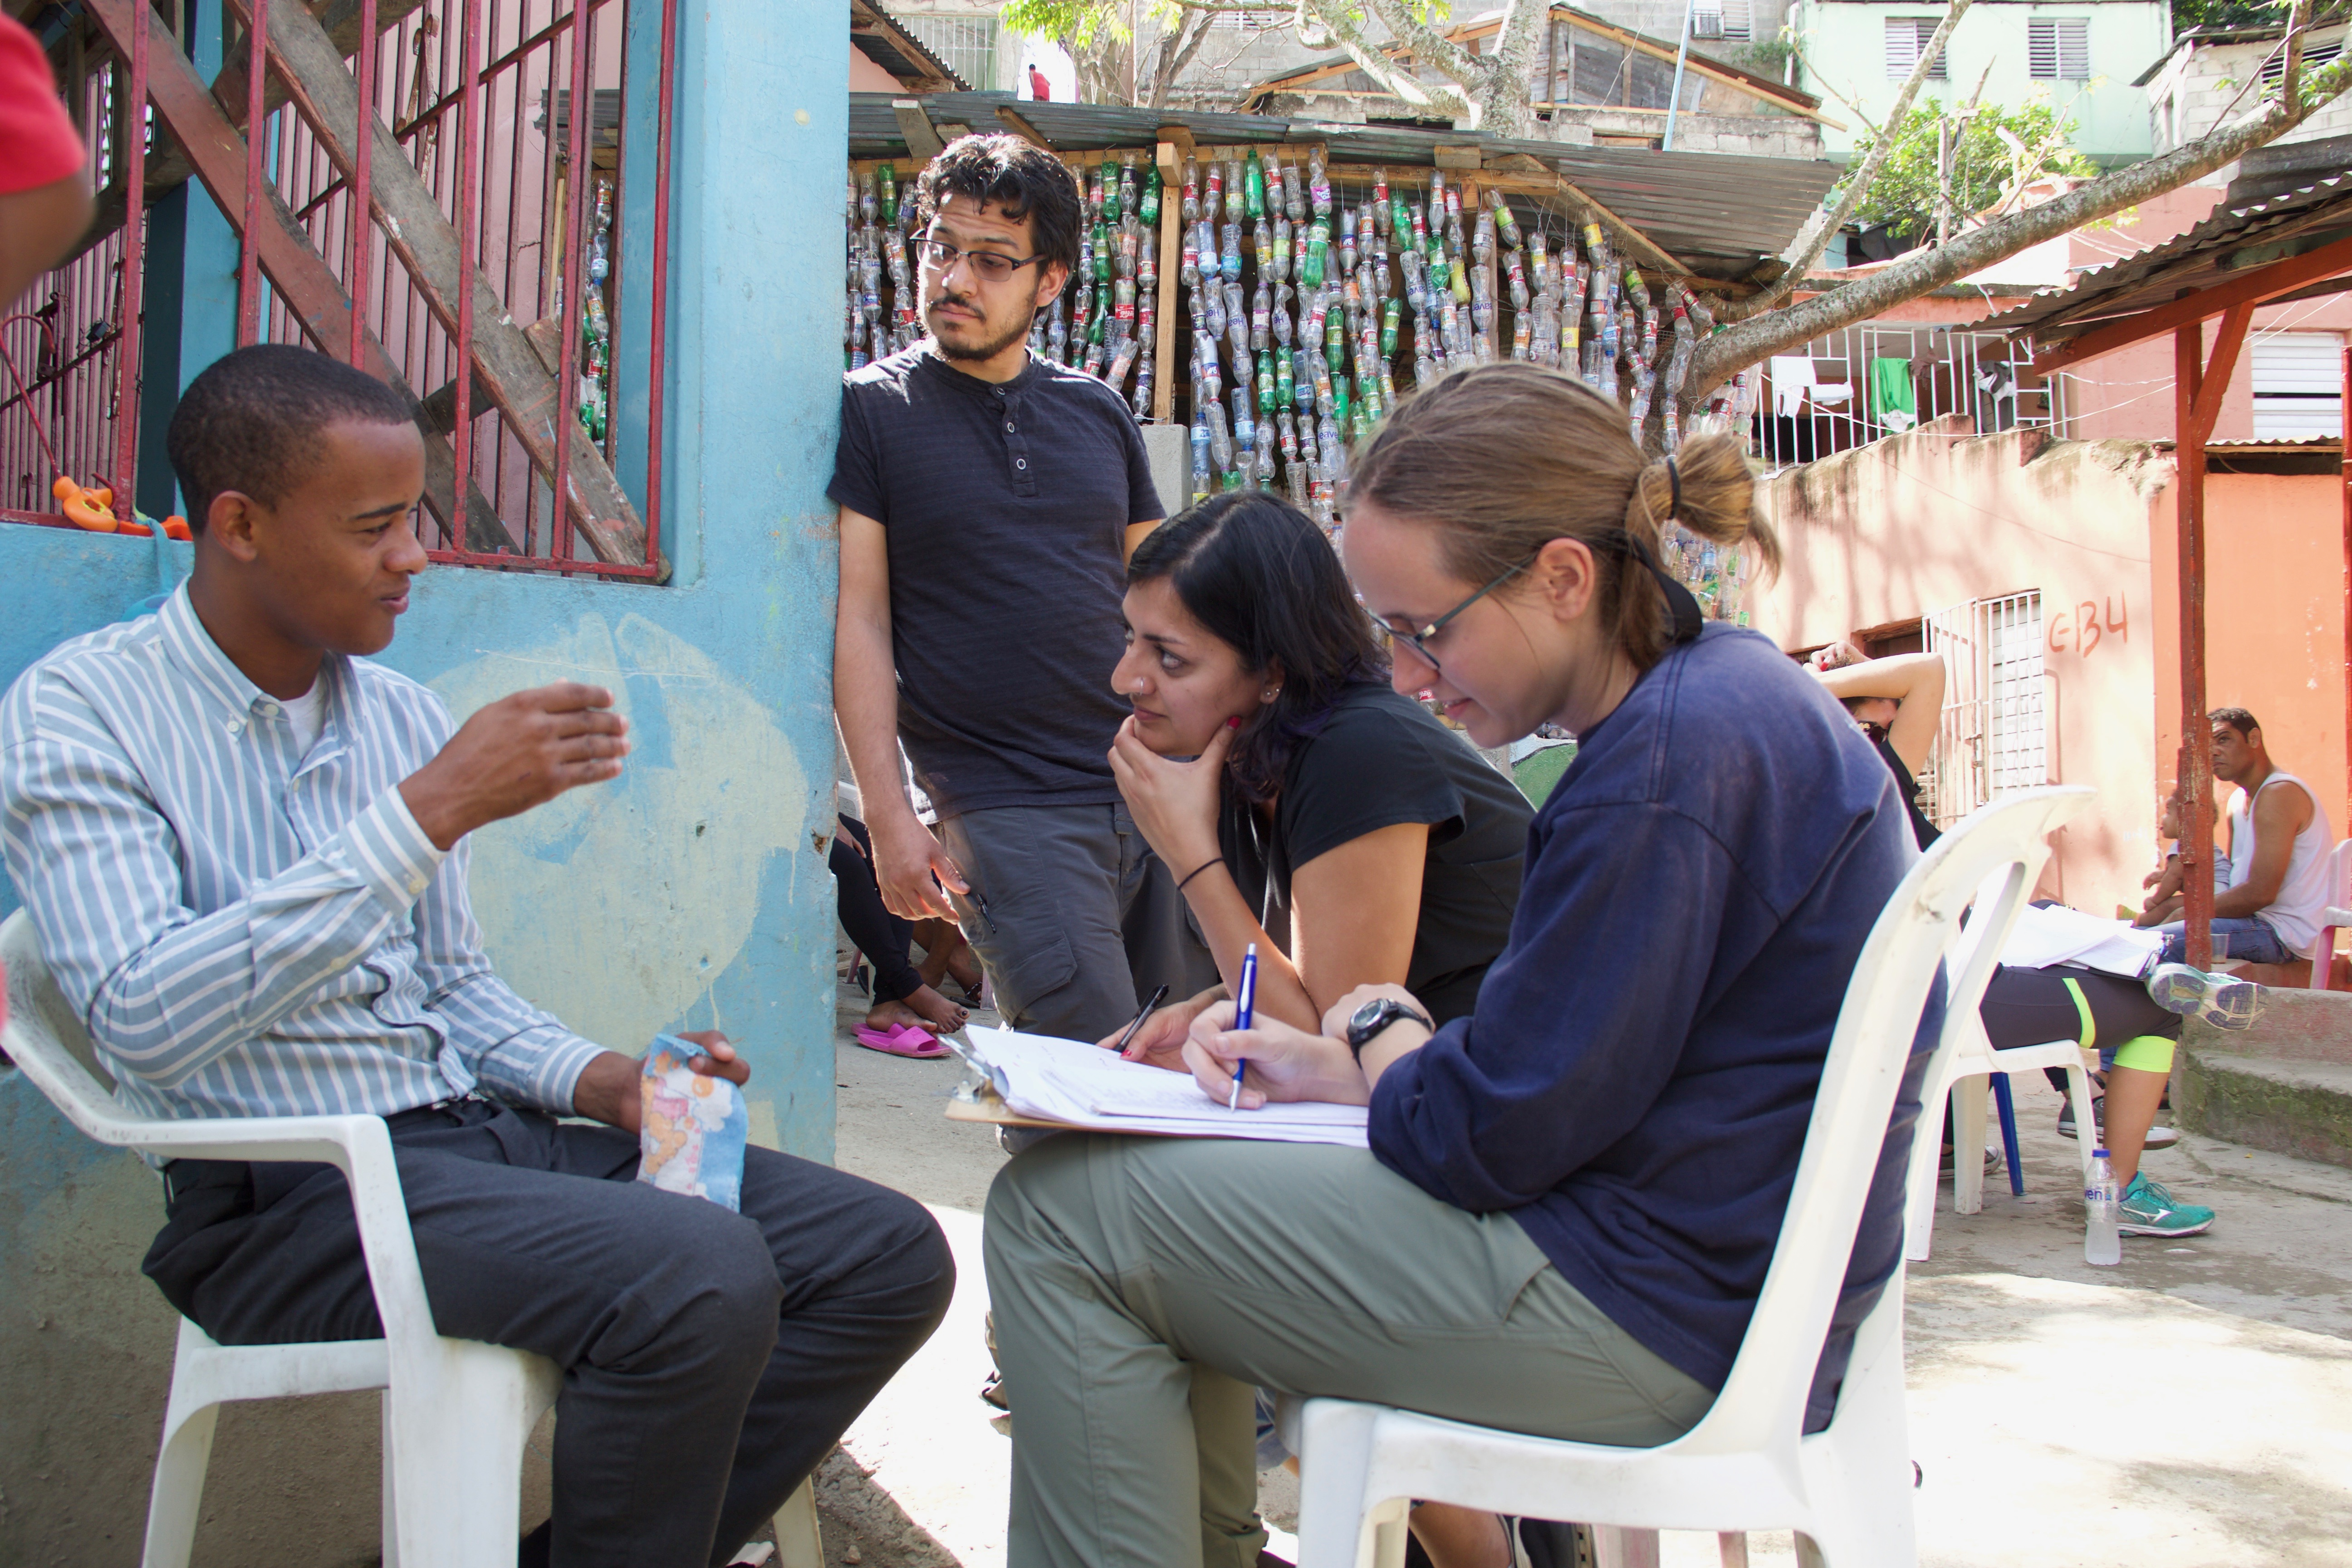 A group of people sit in plastic chairs in front of a colorful, Latin American street. One person is talking and the others are listening intently and taking notes